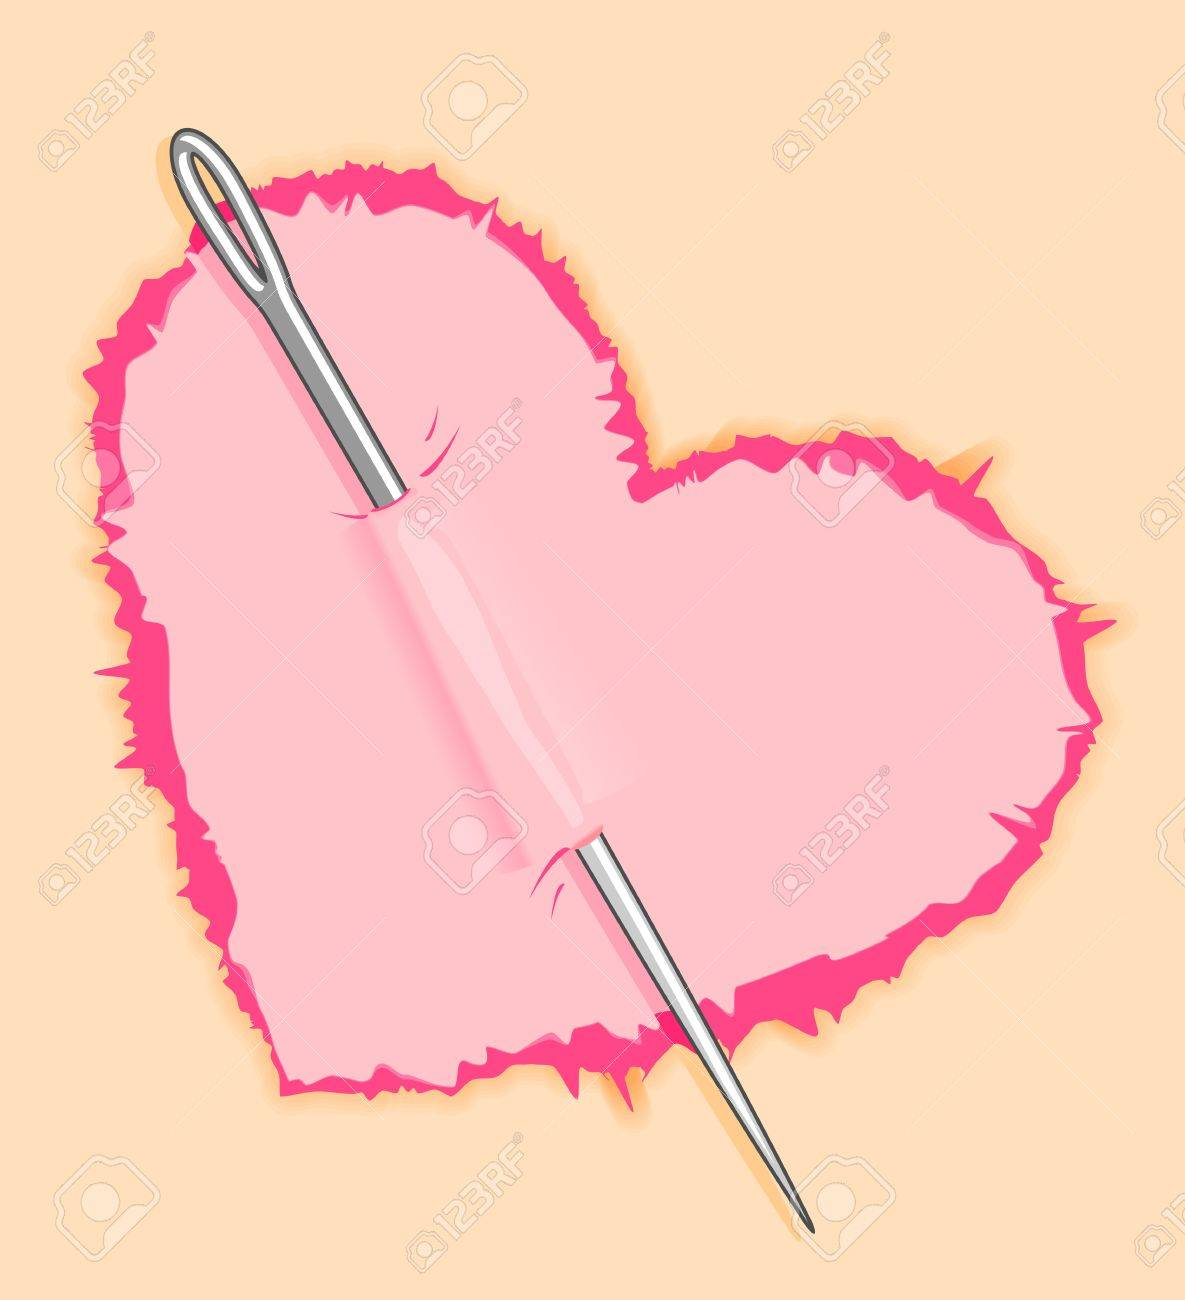 Needle in pink heart for love concept design Stock Vector - 12778639